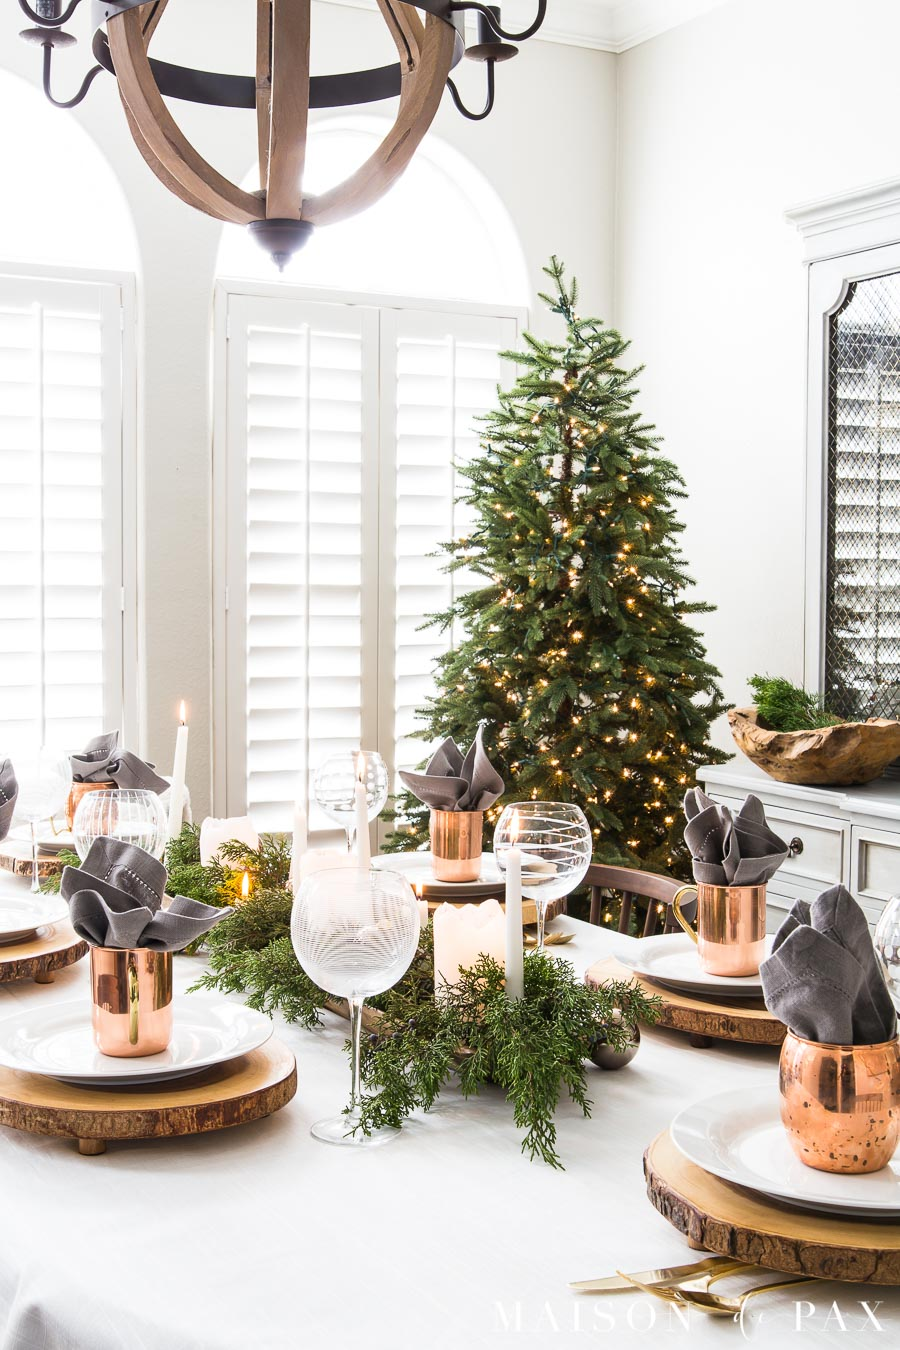 elegant green and copper holiday dining table with a simple green tree in the background